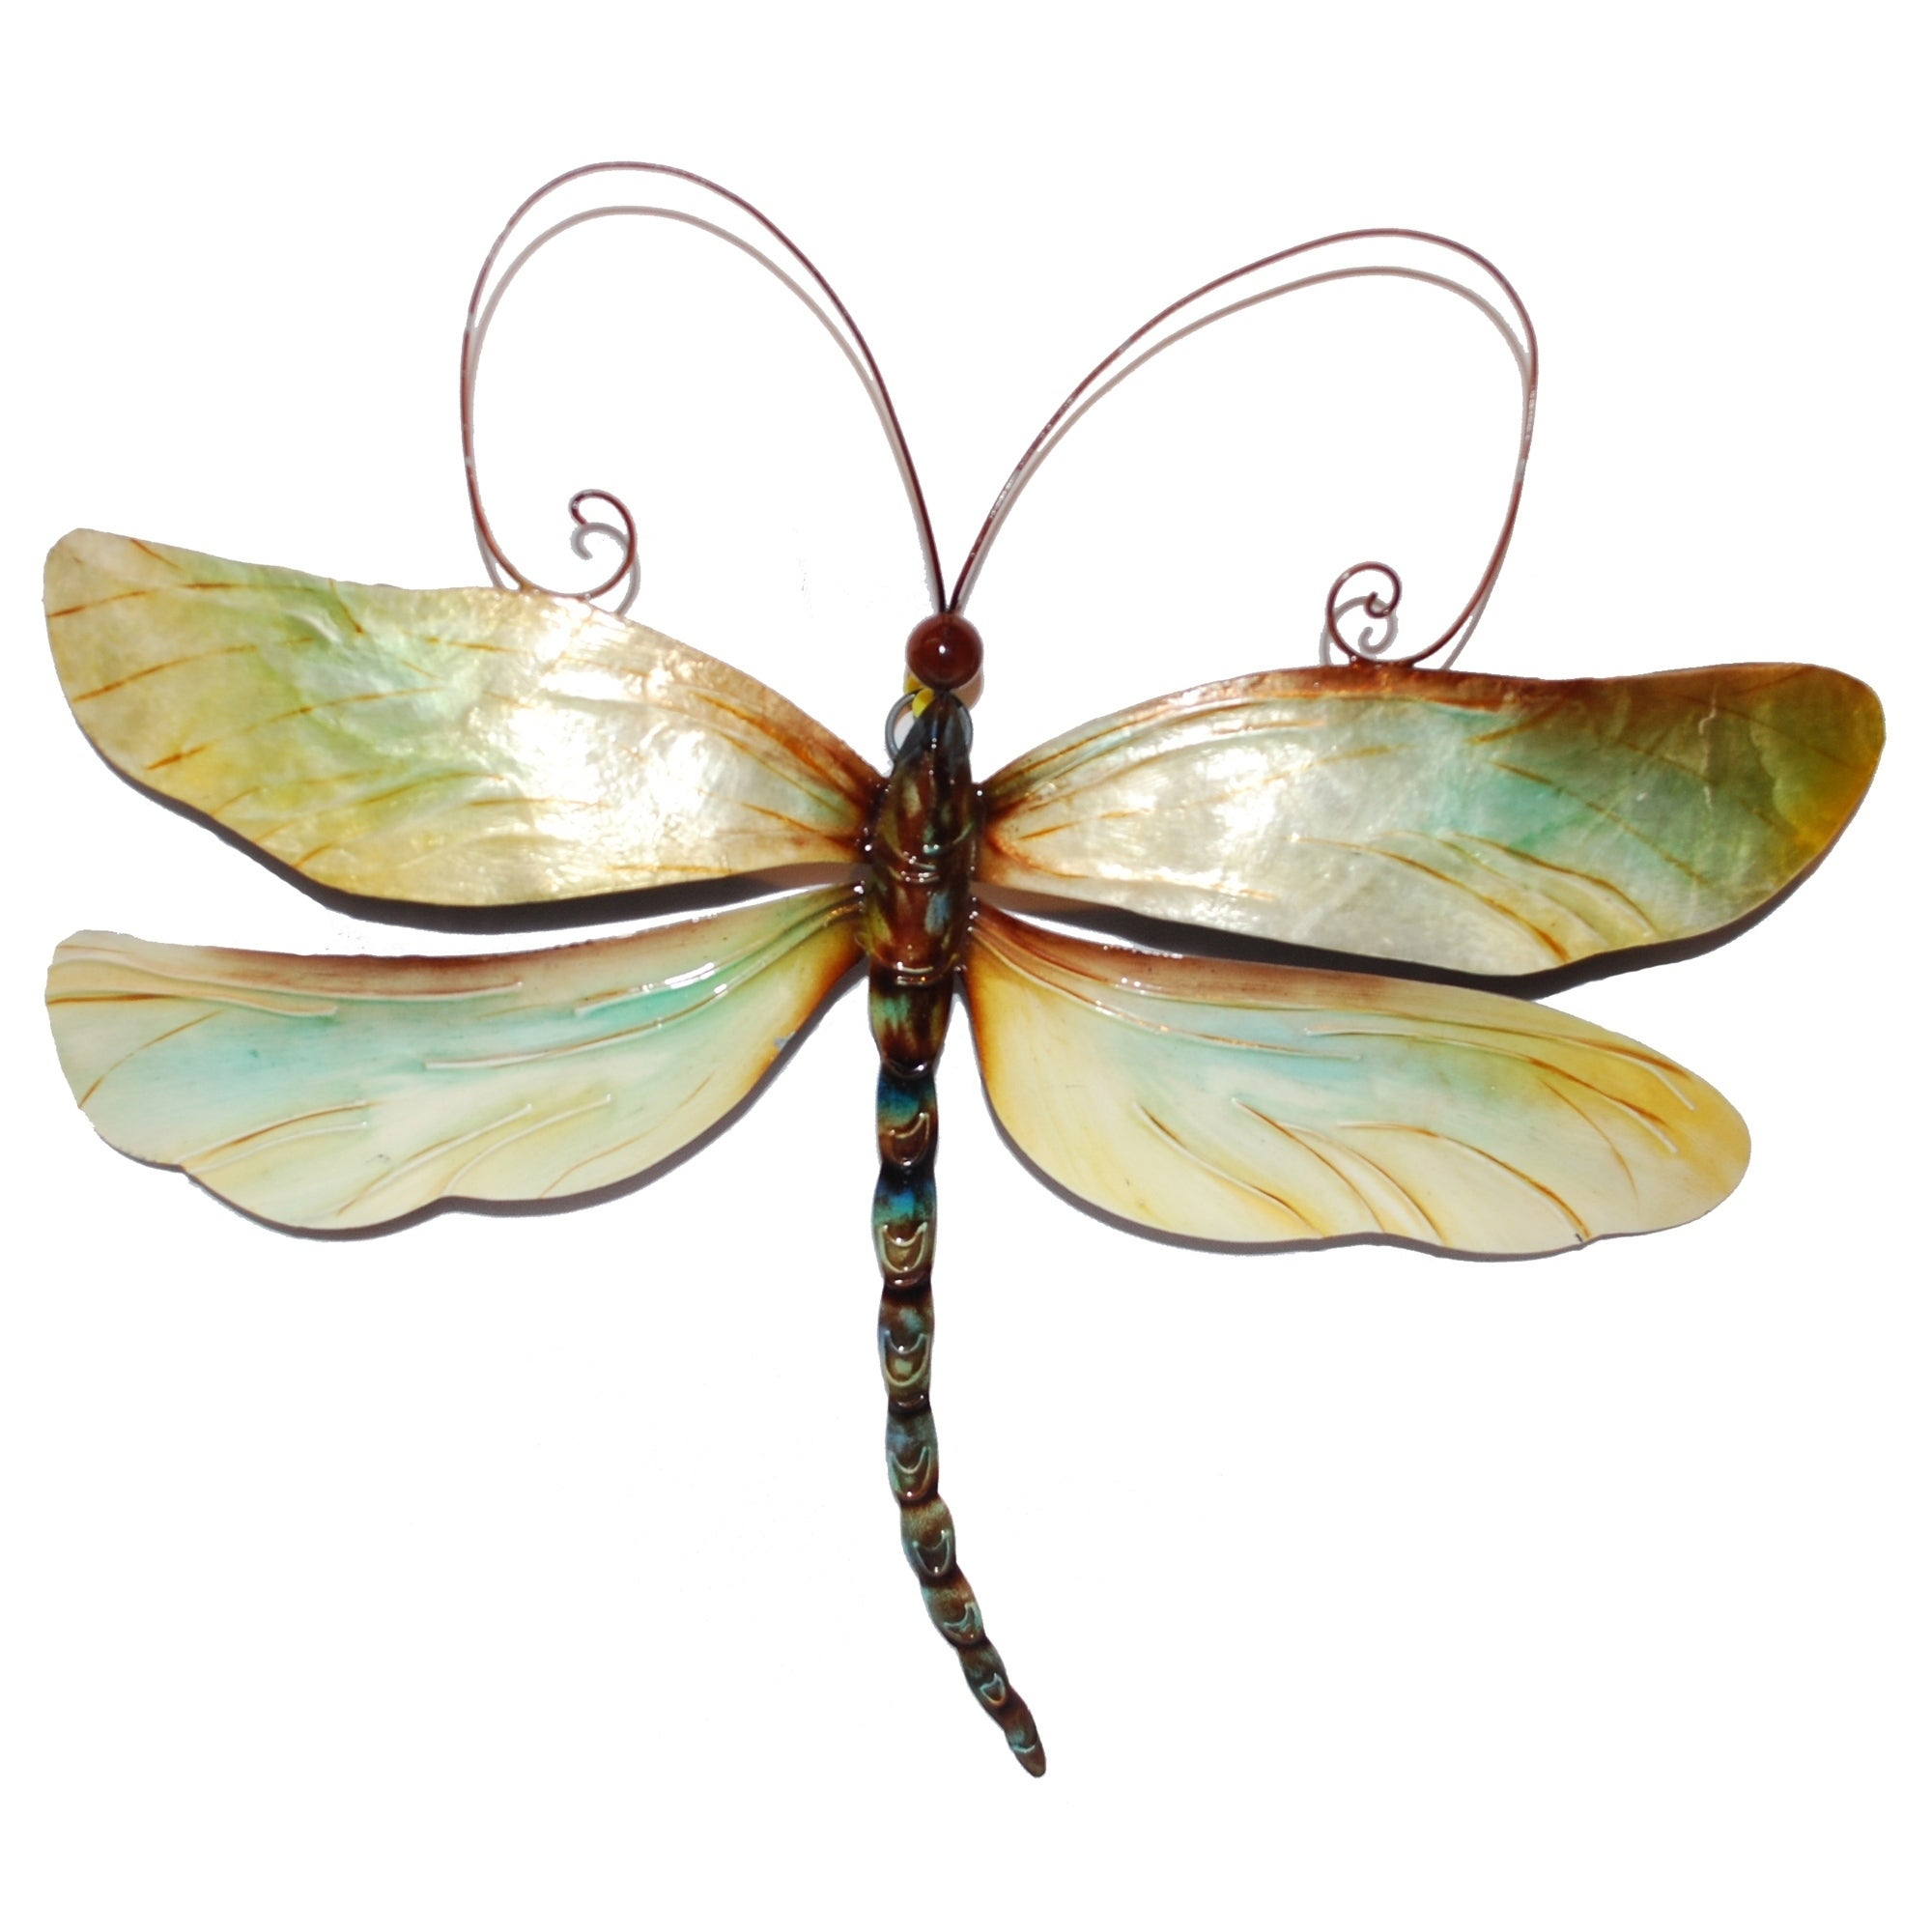 a4c91680a858 Handmade Metal and Capiz Dragonfly Wall Decor